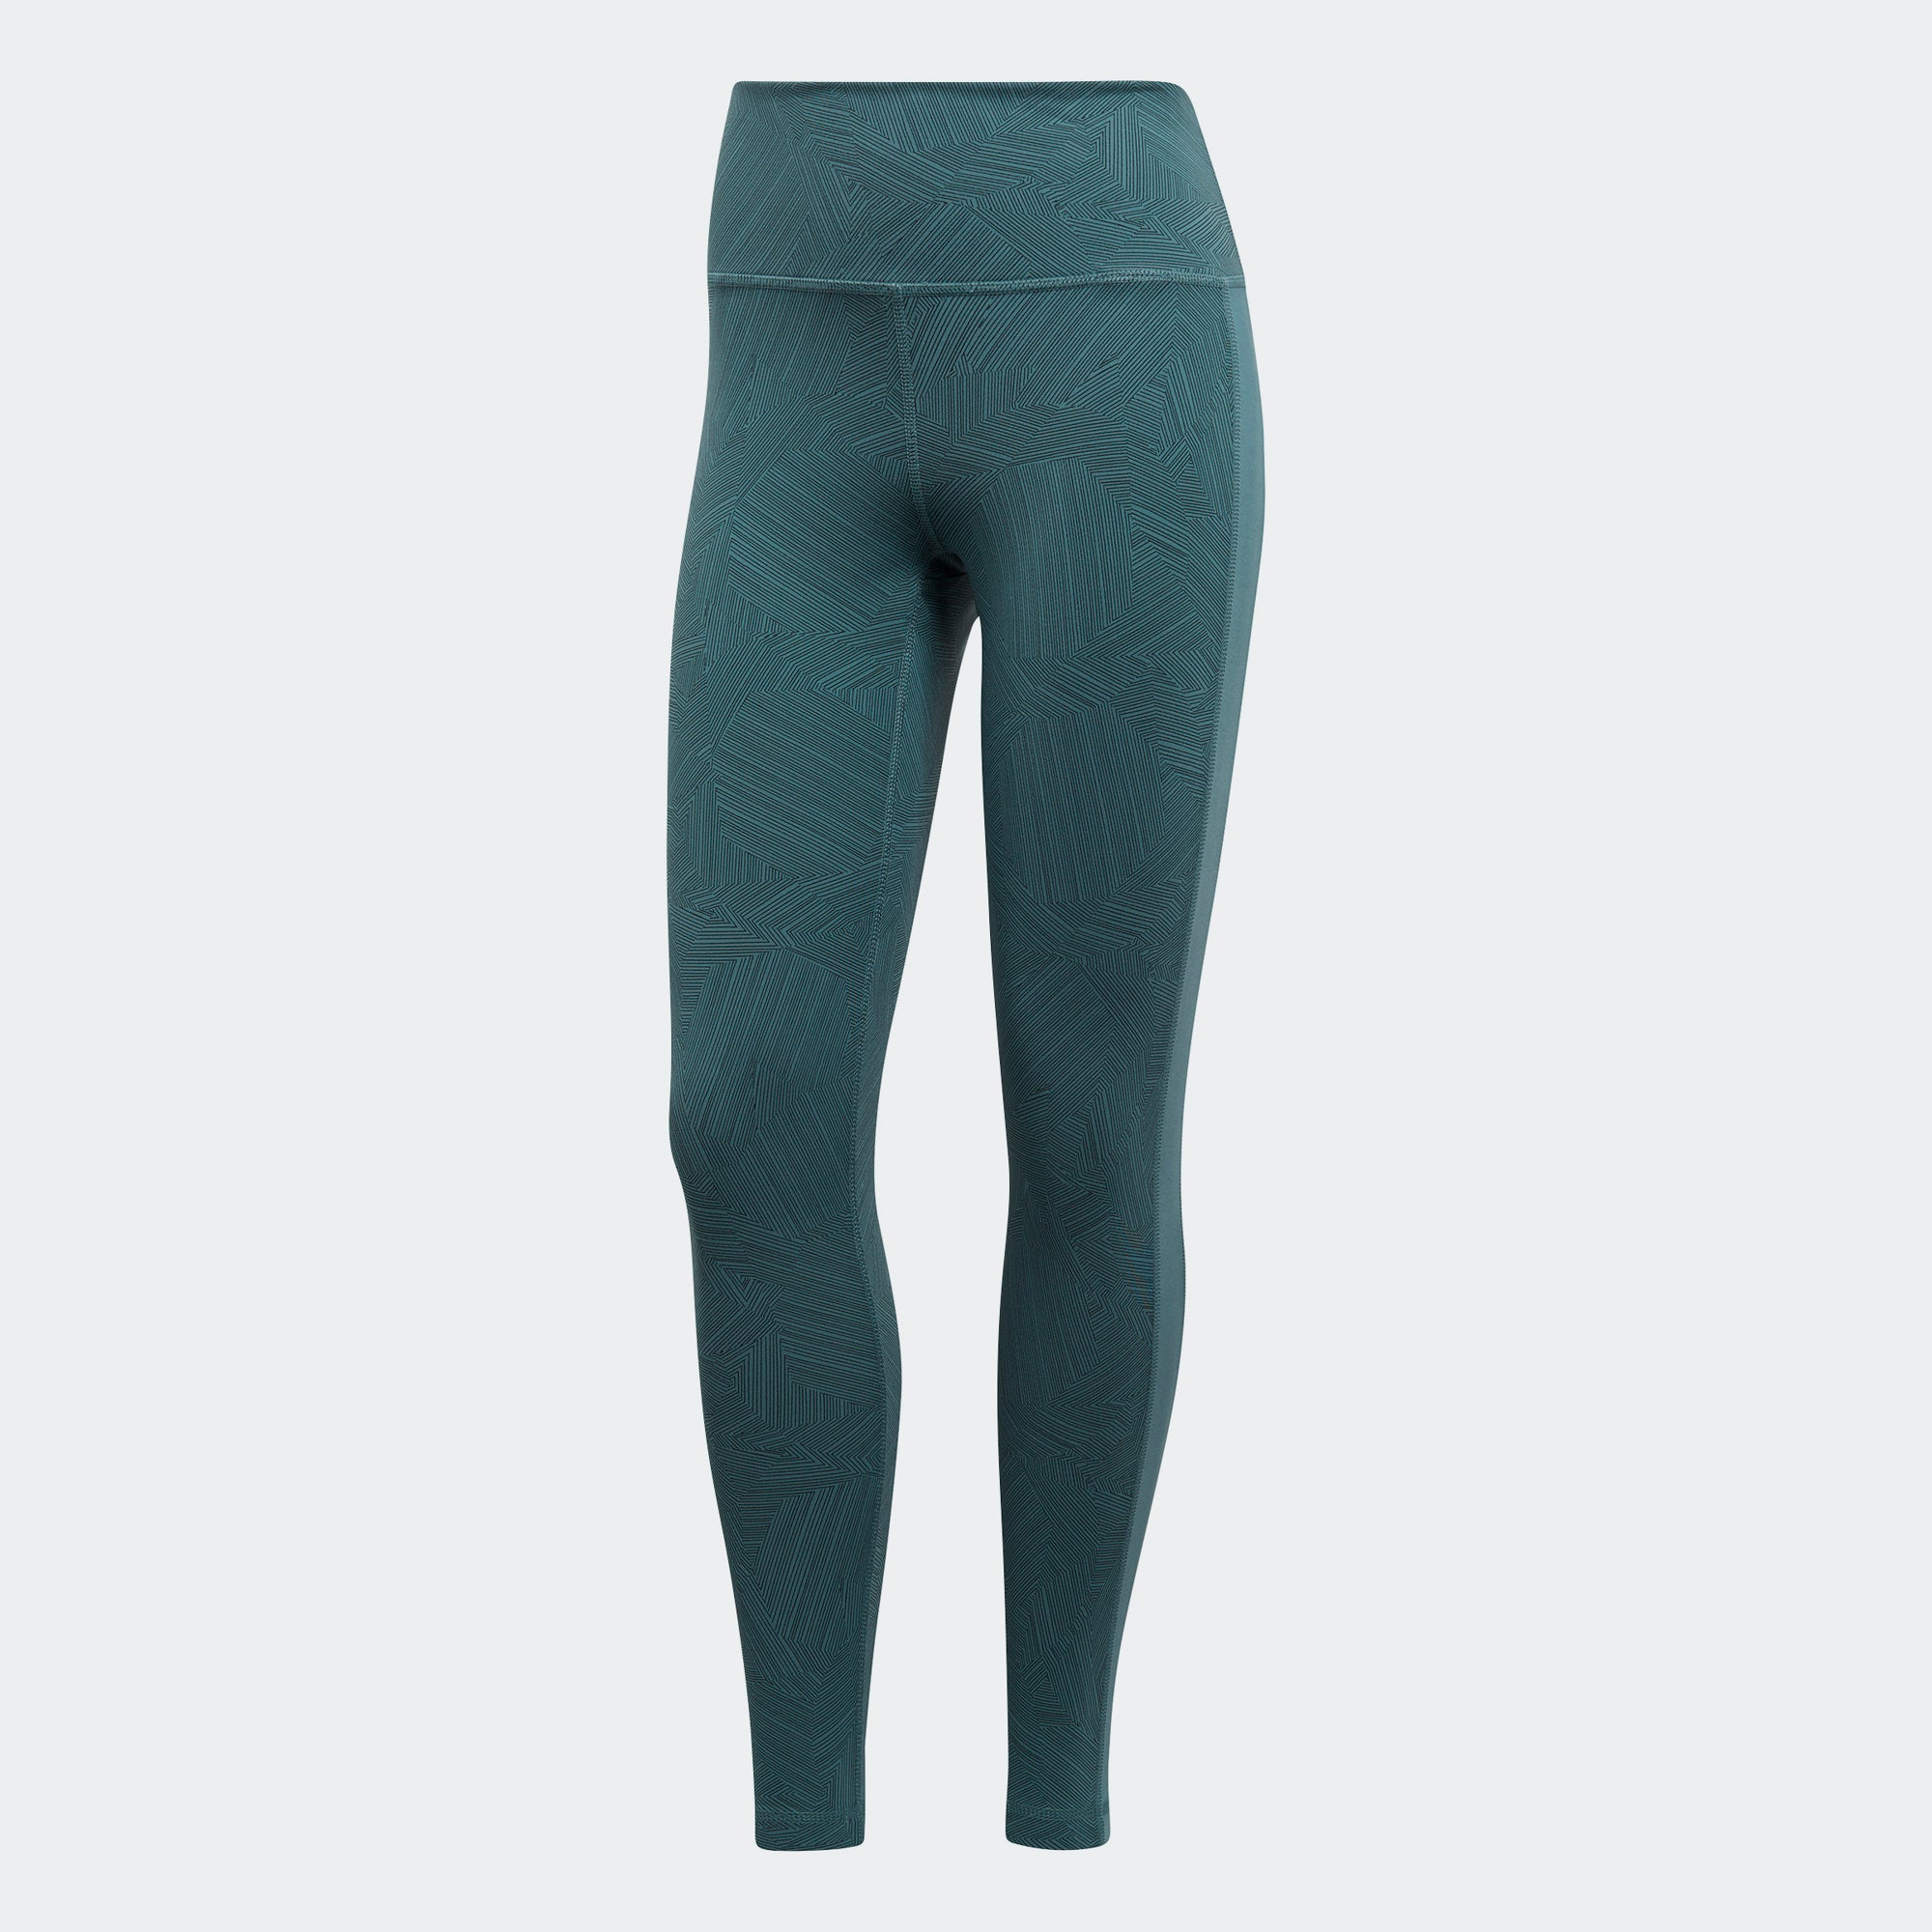 24b40926aee33 Buy adidas Wanderlust Believe This High-Rise Tights, Raw Green in ...